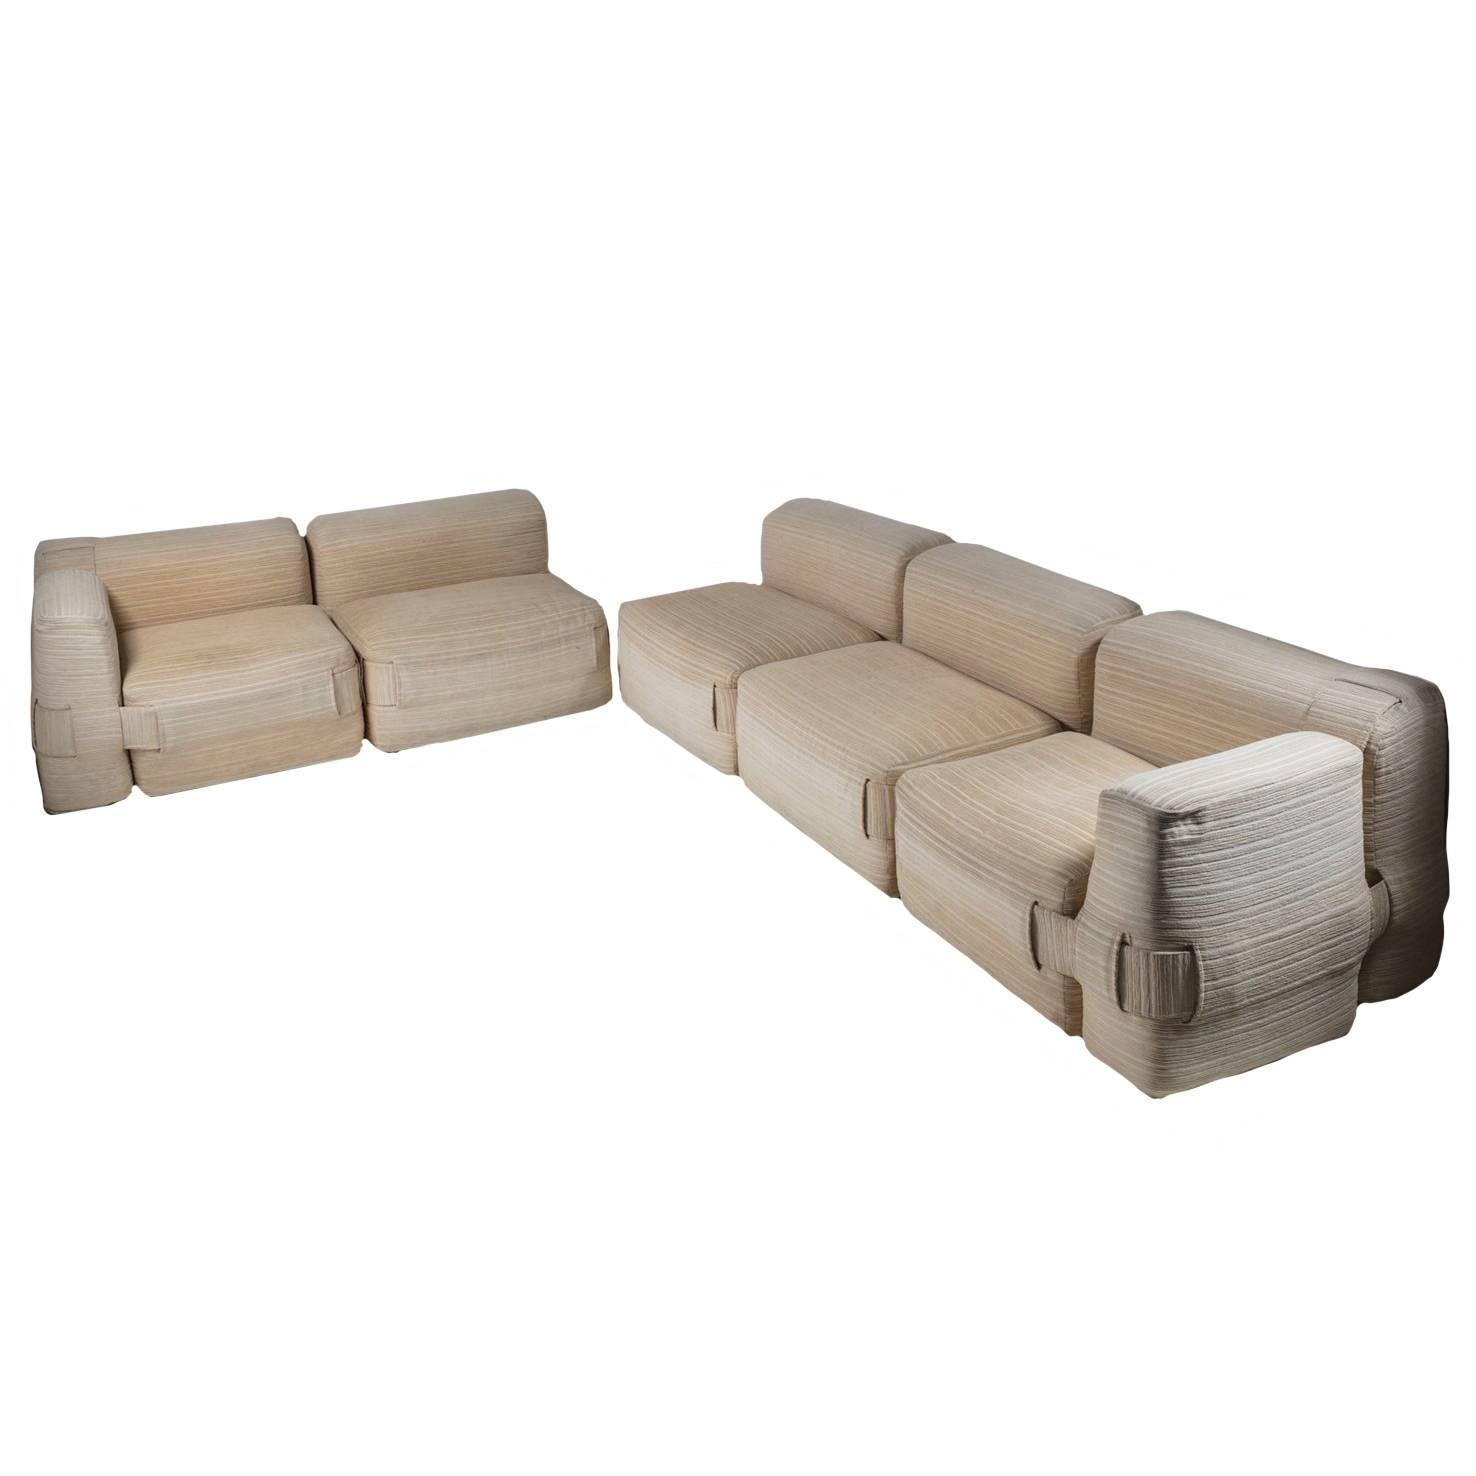 "932"" Sofa Setmario Bellini For Cassina For Sale At 1Stdibs Within Bellini Sofas (Image 1 of 20)"